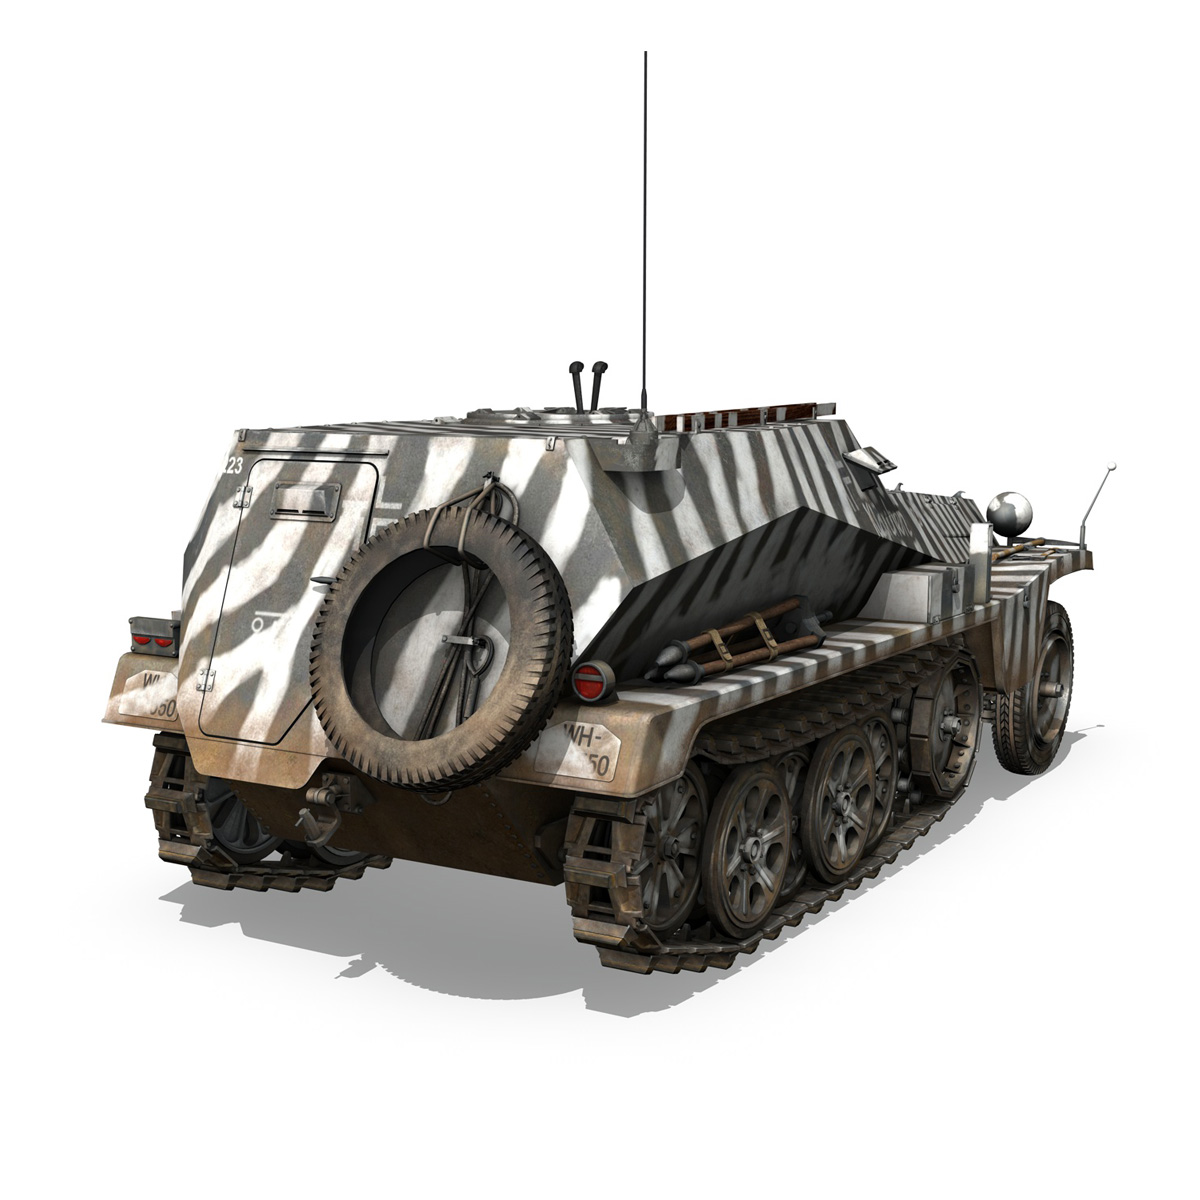 sdkfz.253 – beob.pz.wg. – observation vehicle 3d model 3ds fbx c4d lwo obj 269031